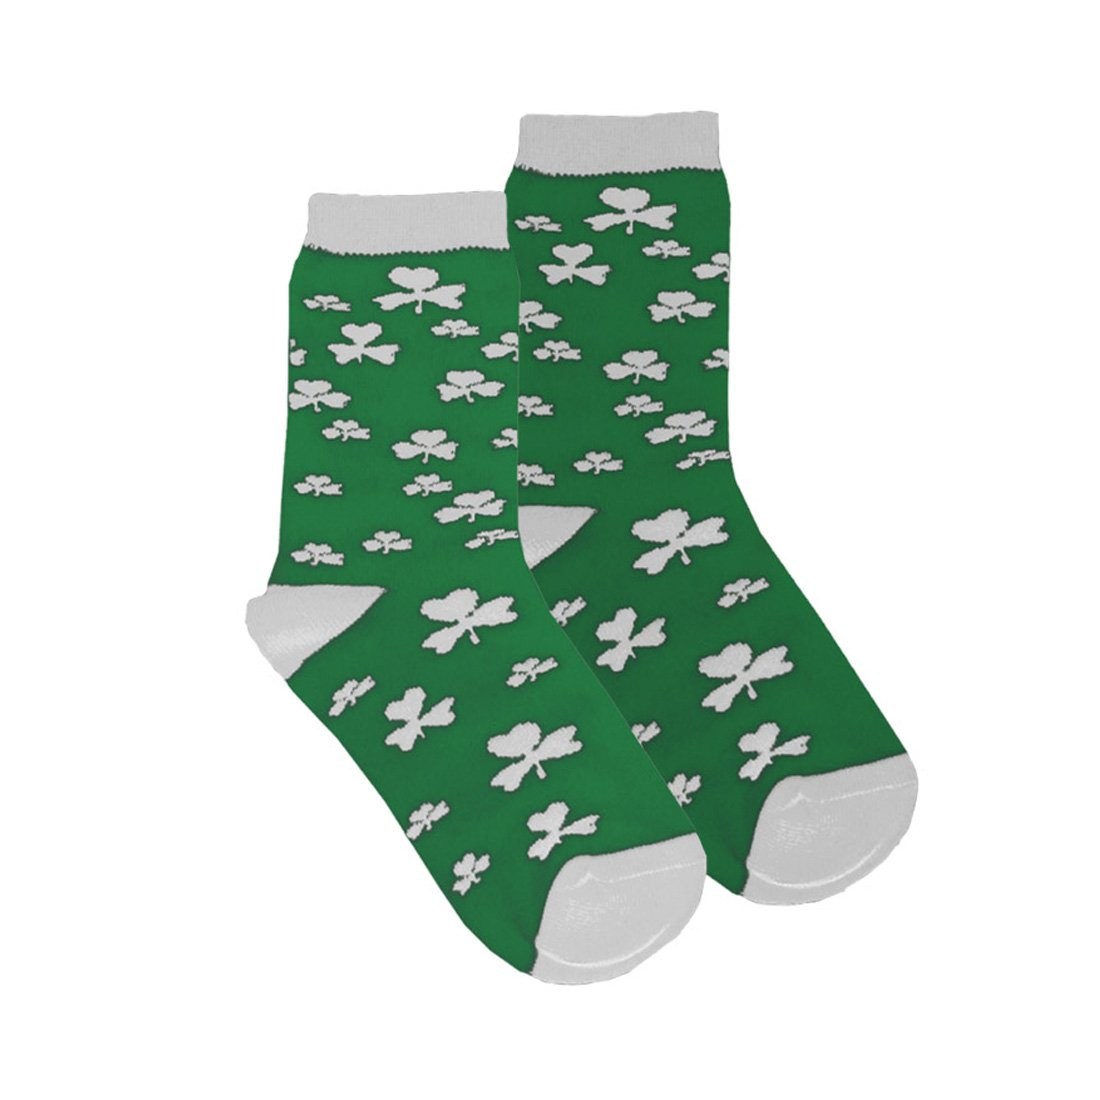 St Green Colour Patricks Day Kids Socks With White Shamrock Print